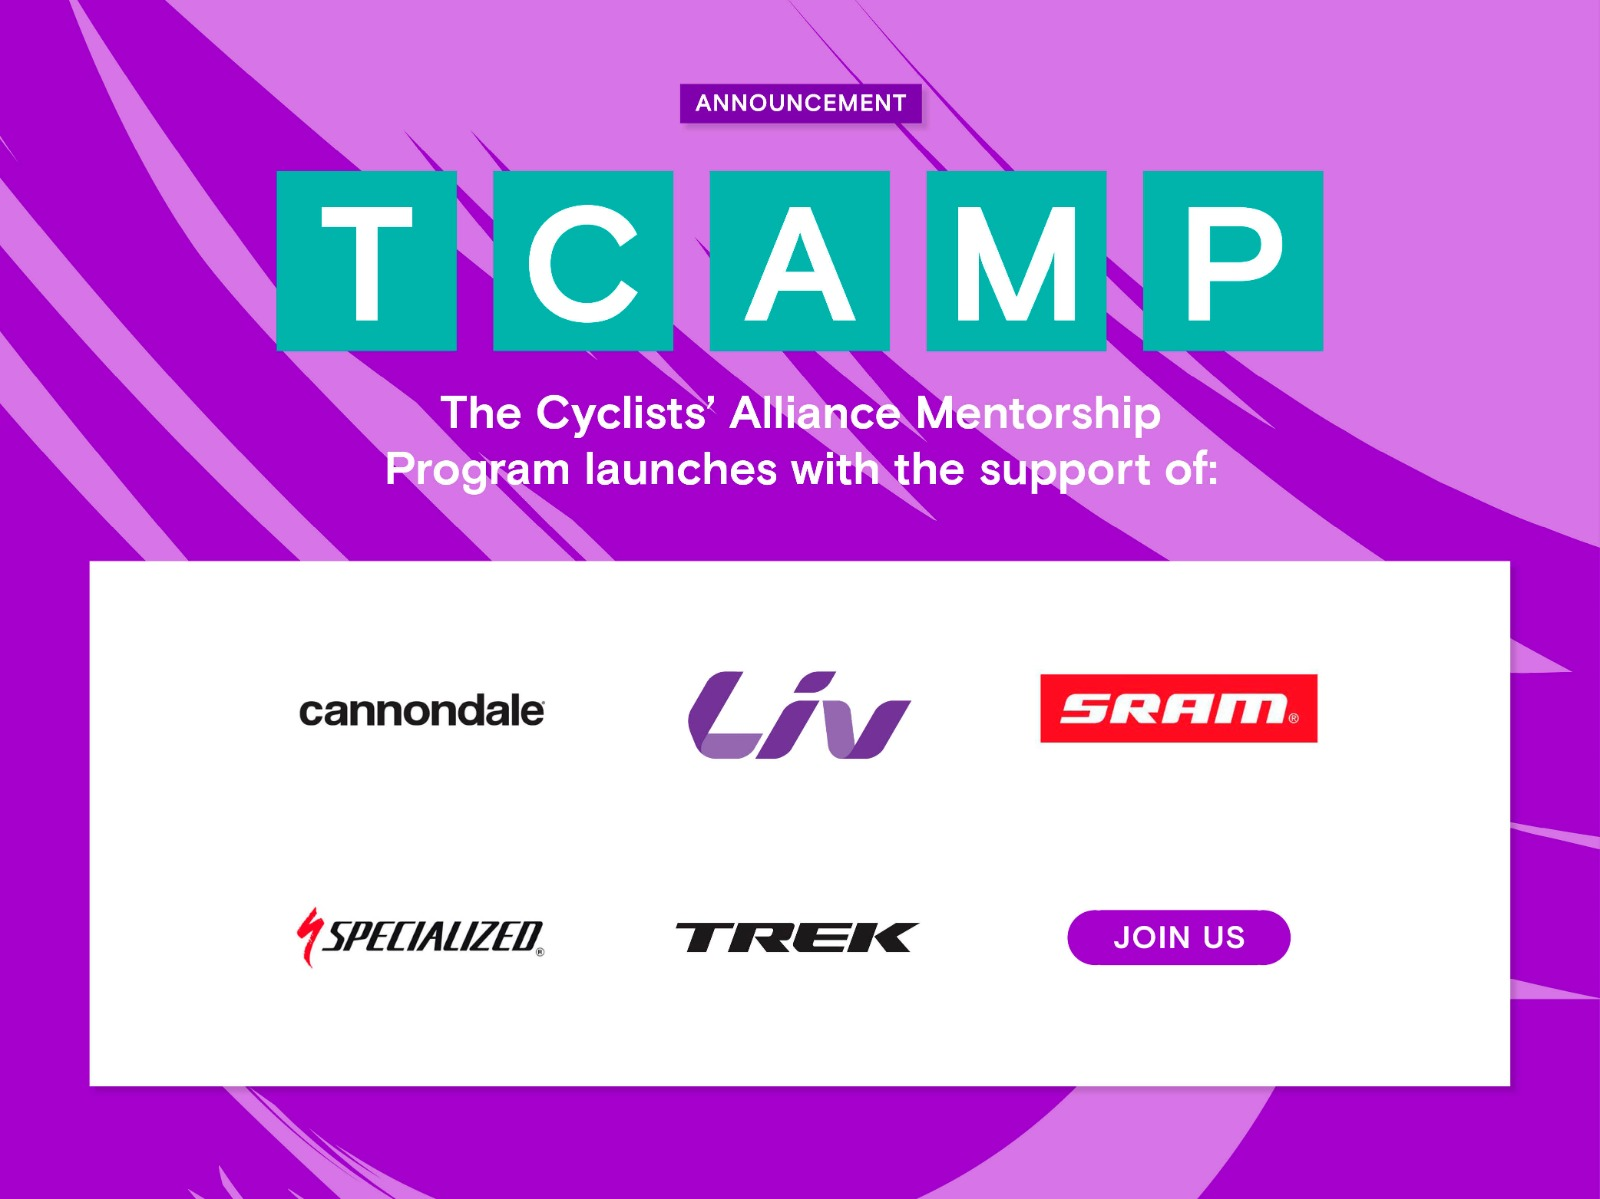 The Cyclists' Alliance announces 'TCAMP' a New, Innovative Mentor Program for Professional Female Cyclists